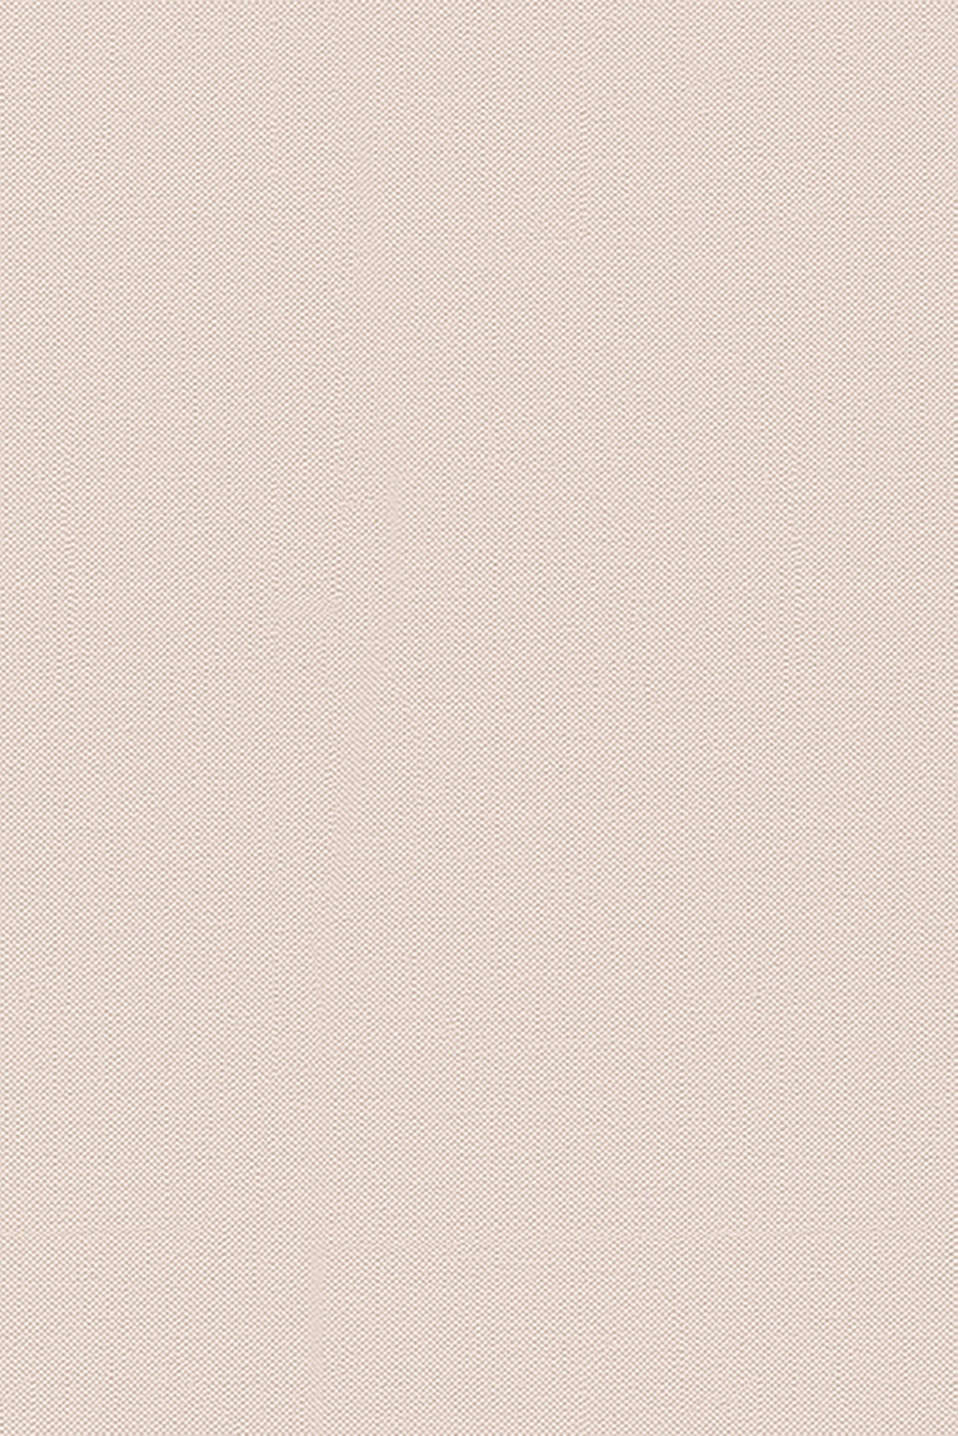 Esprit - Kids wallpaper Sweet Butterfly Plain